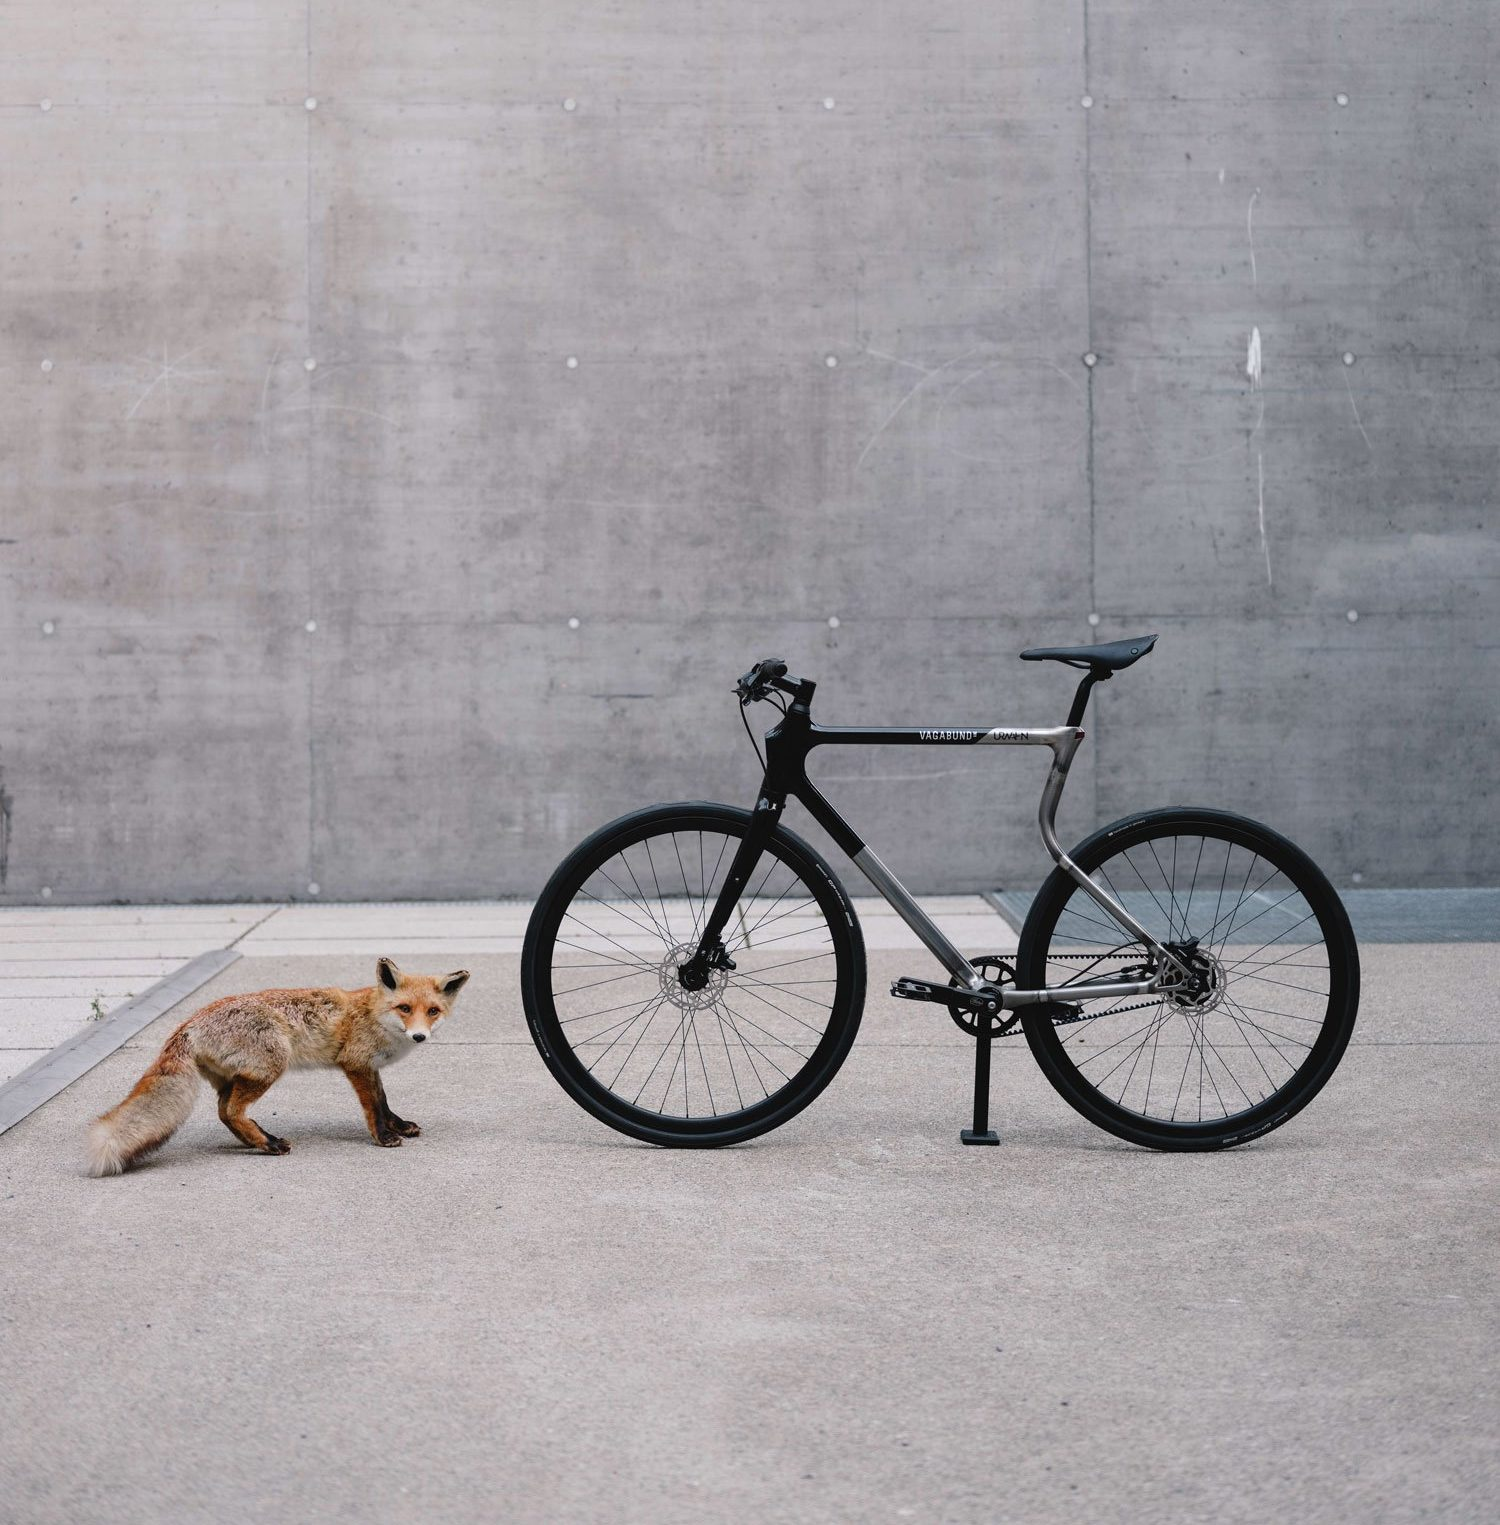 The Urwahn x Vagabund 3D printed bike next to its inspiration - the fox. Photo via Urwahn/Vagabund Moto.